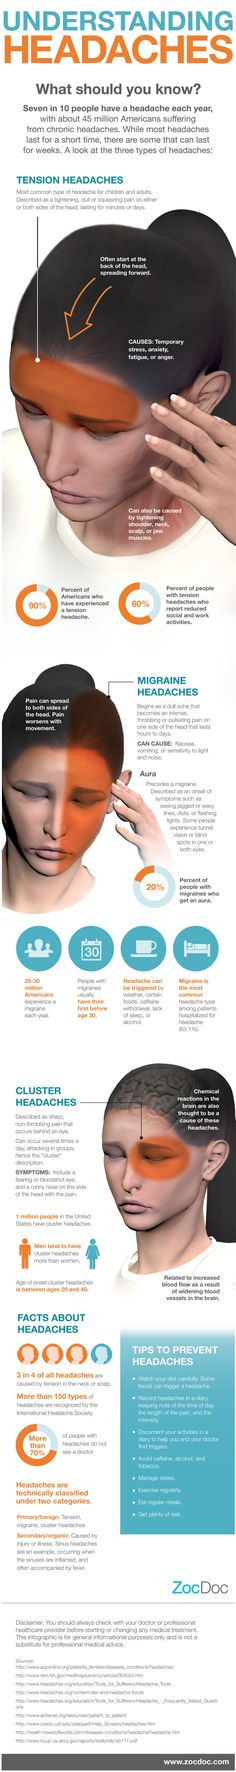 Understanding Headaches  #headaches #healthinfographic